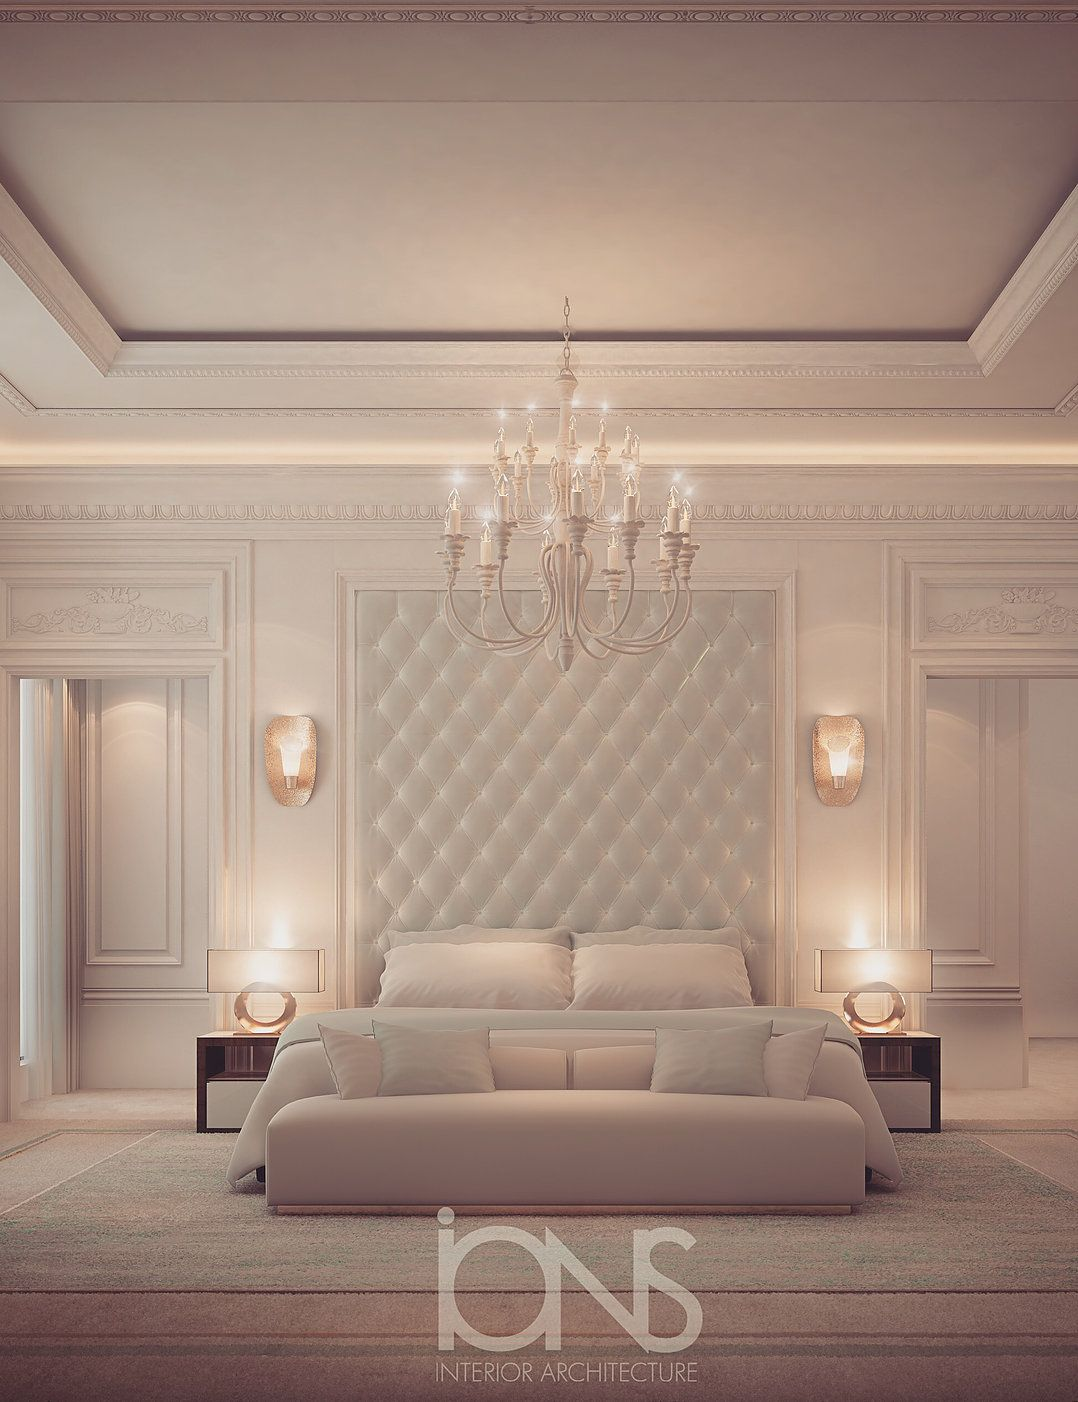 bedroom design - dubai villa interior design | Bed room in ...